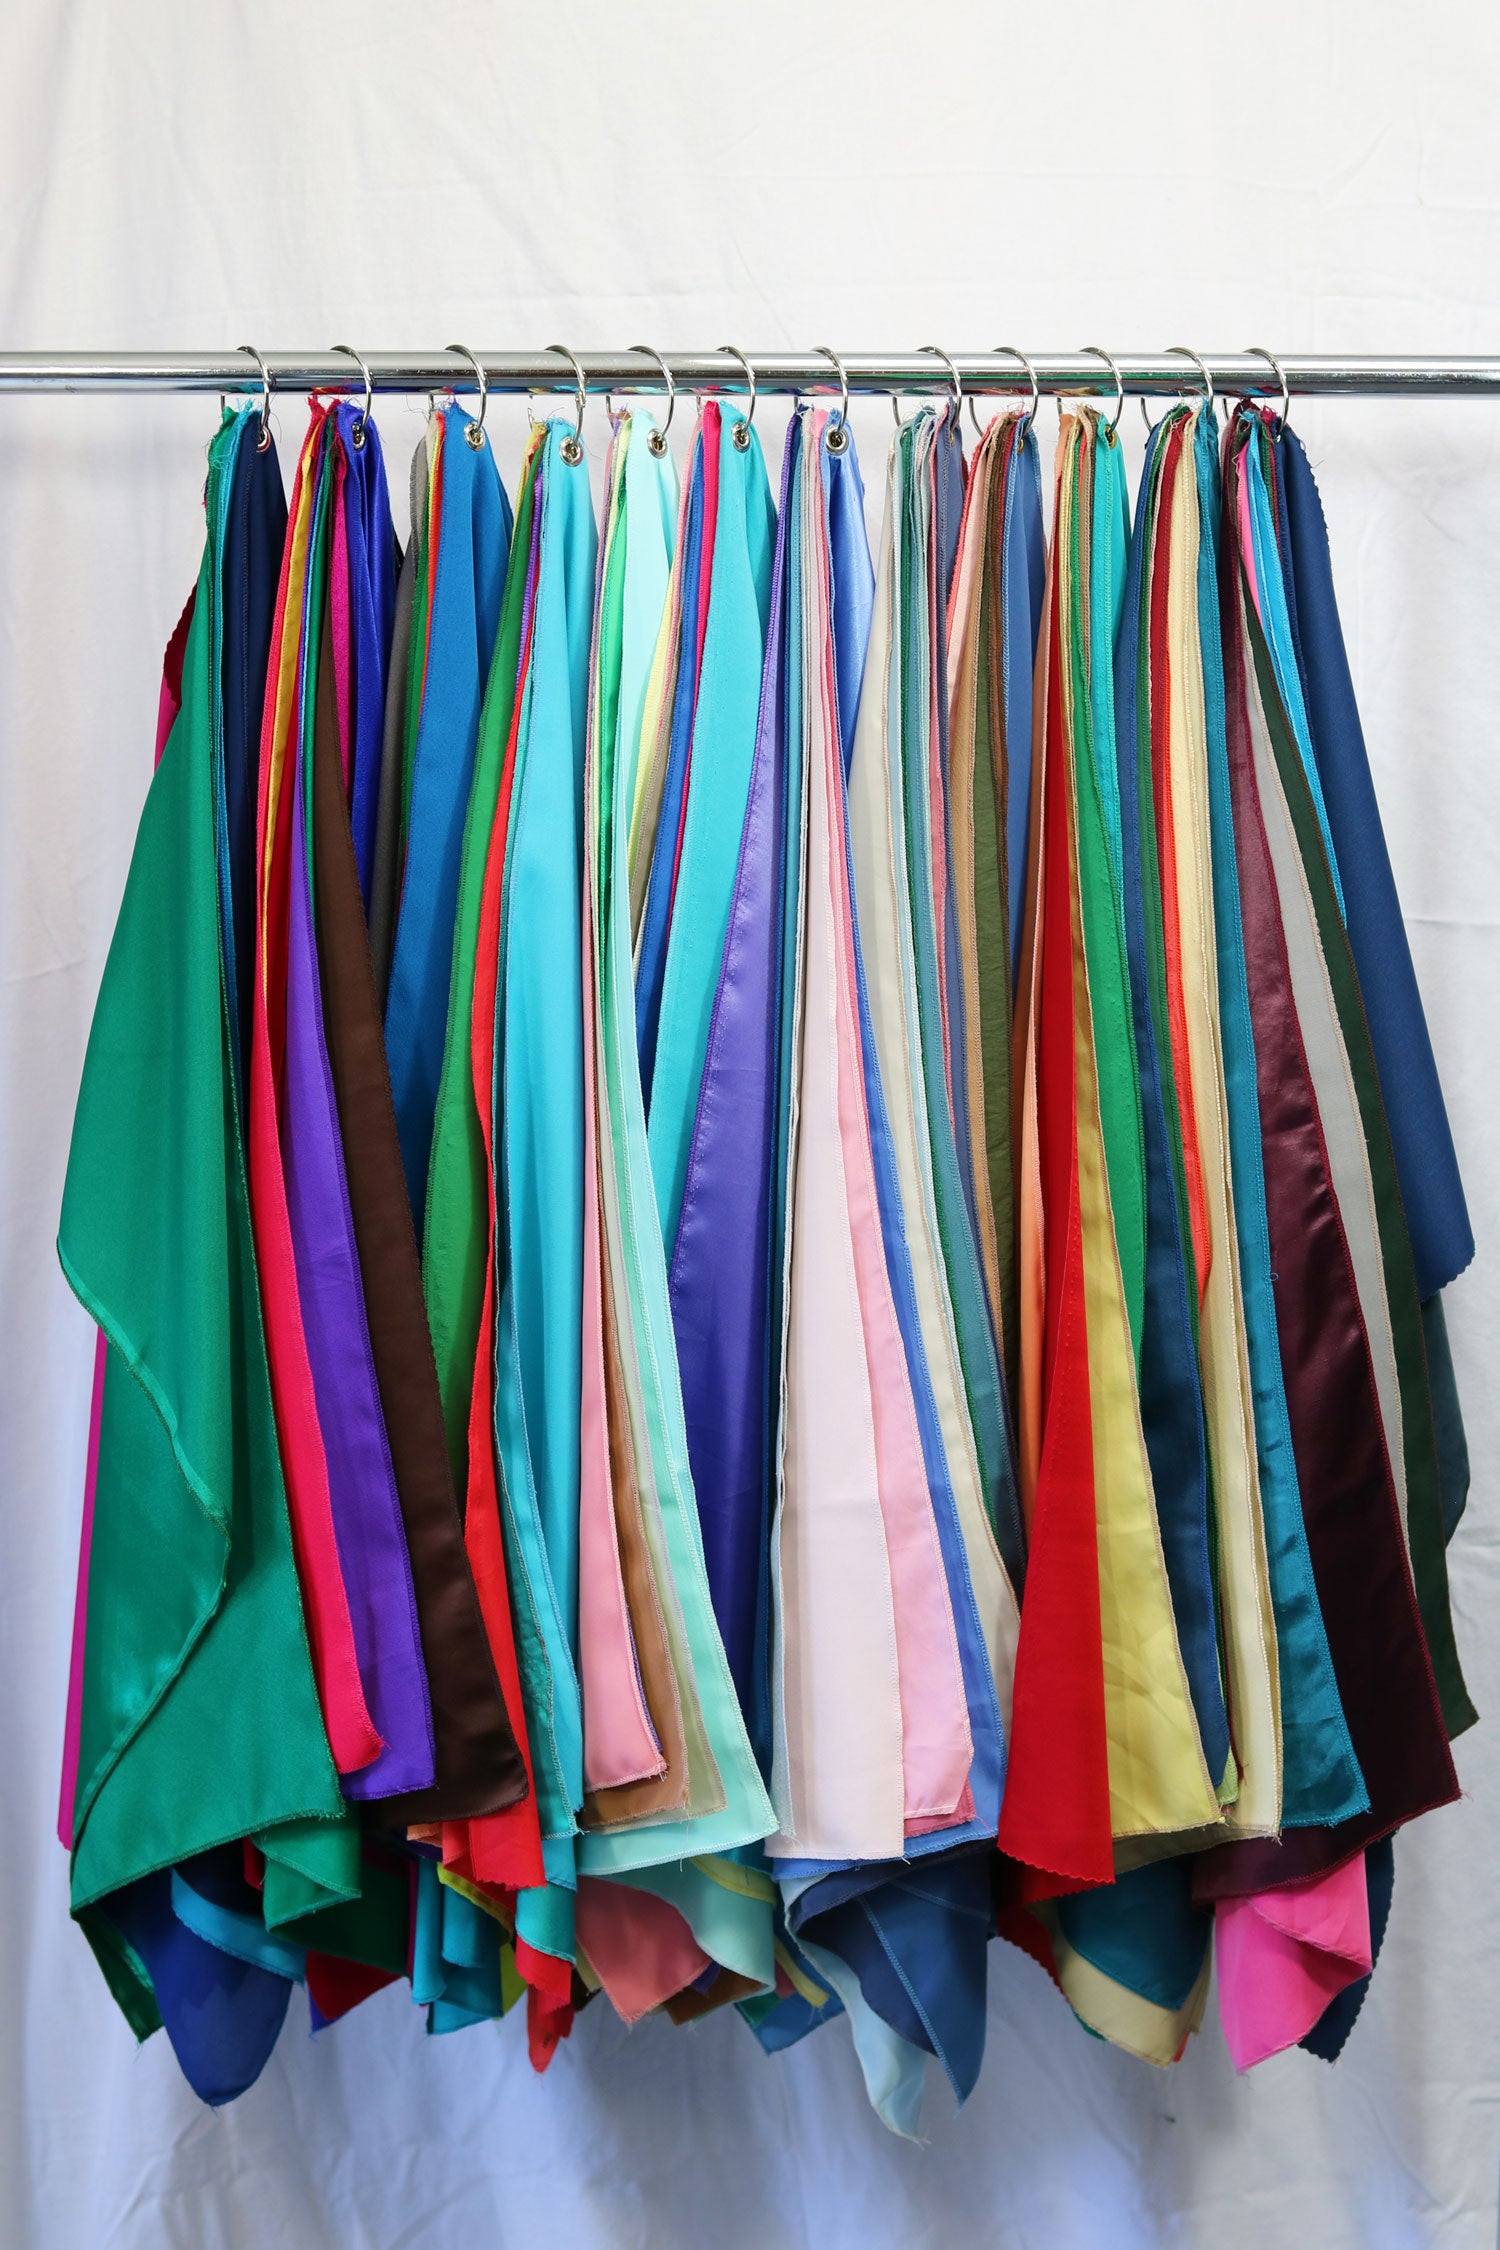 12 Season Personal Color Analysis Test Drapes Full Set